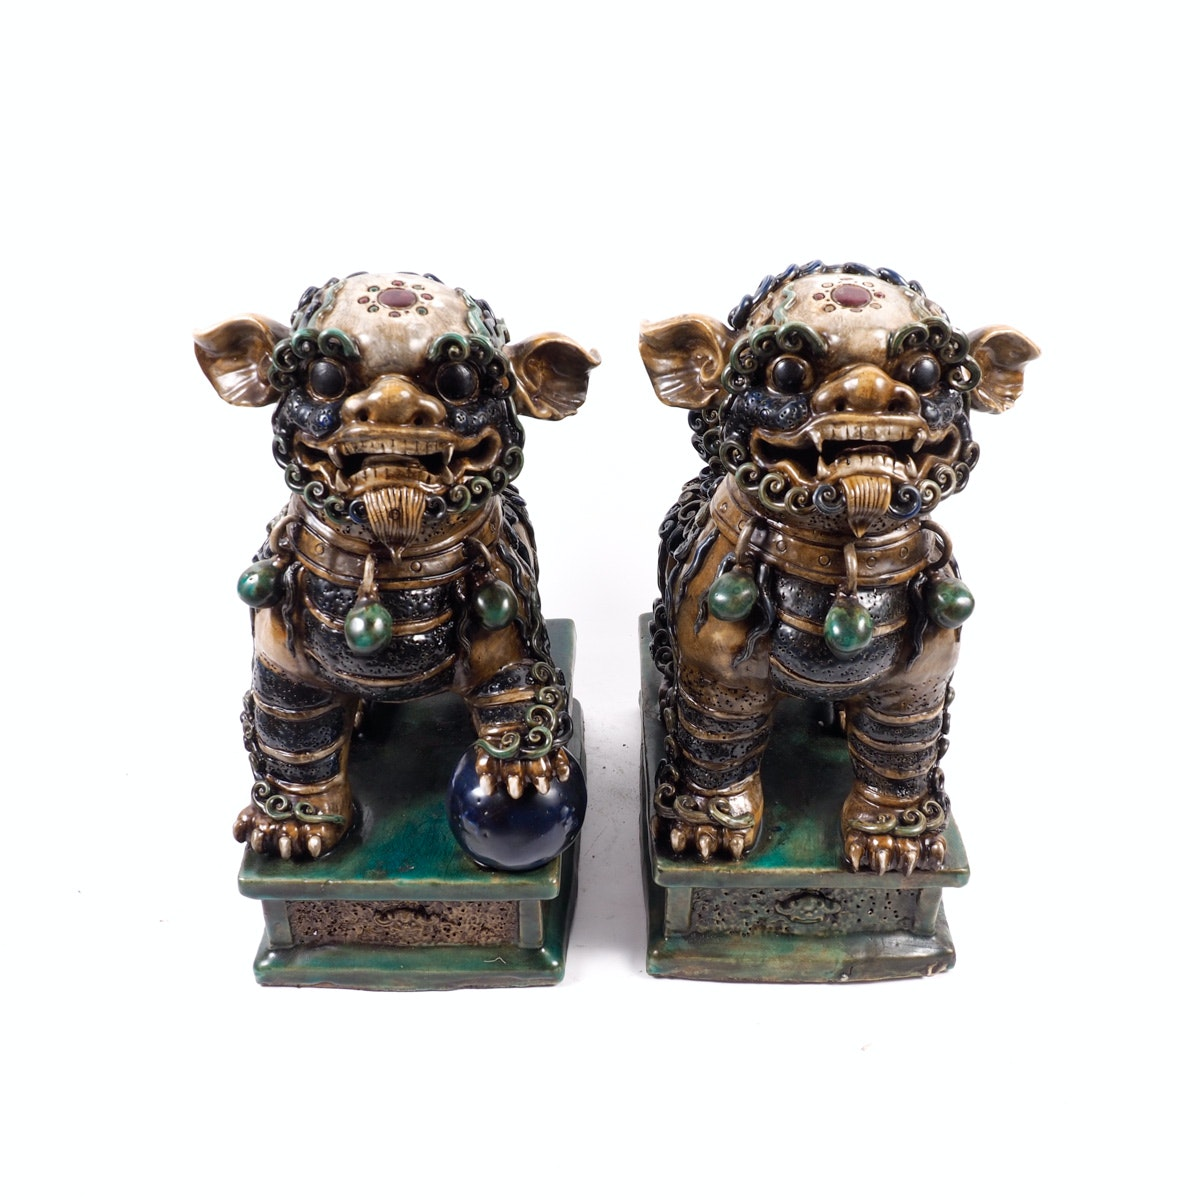 Two Hand Painted Ceramic Imperial Lion Statues